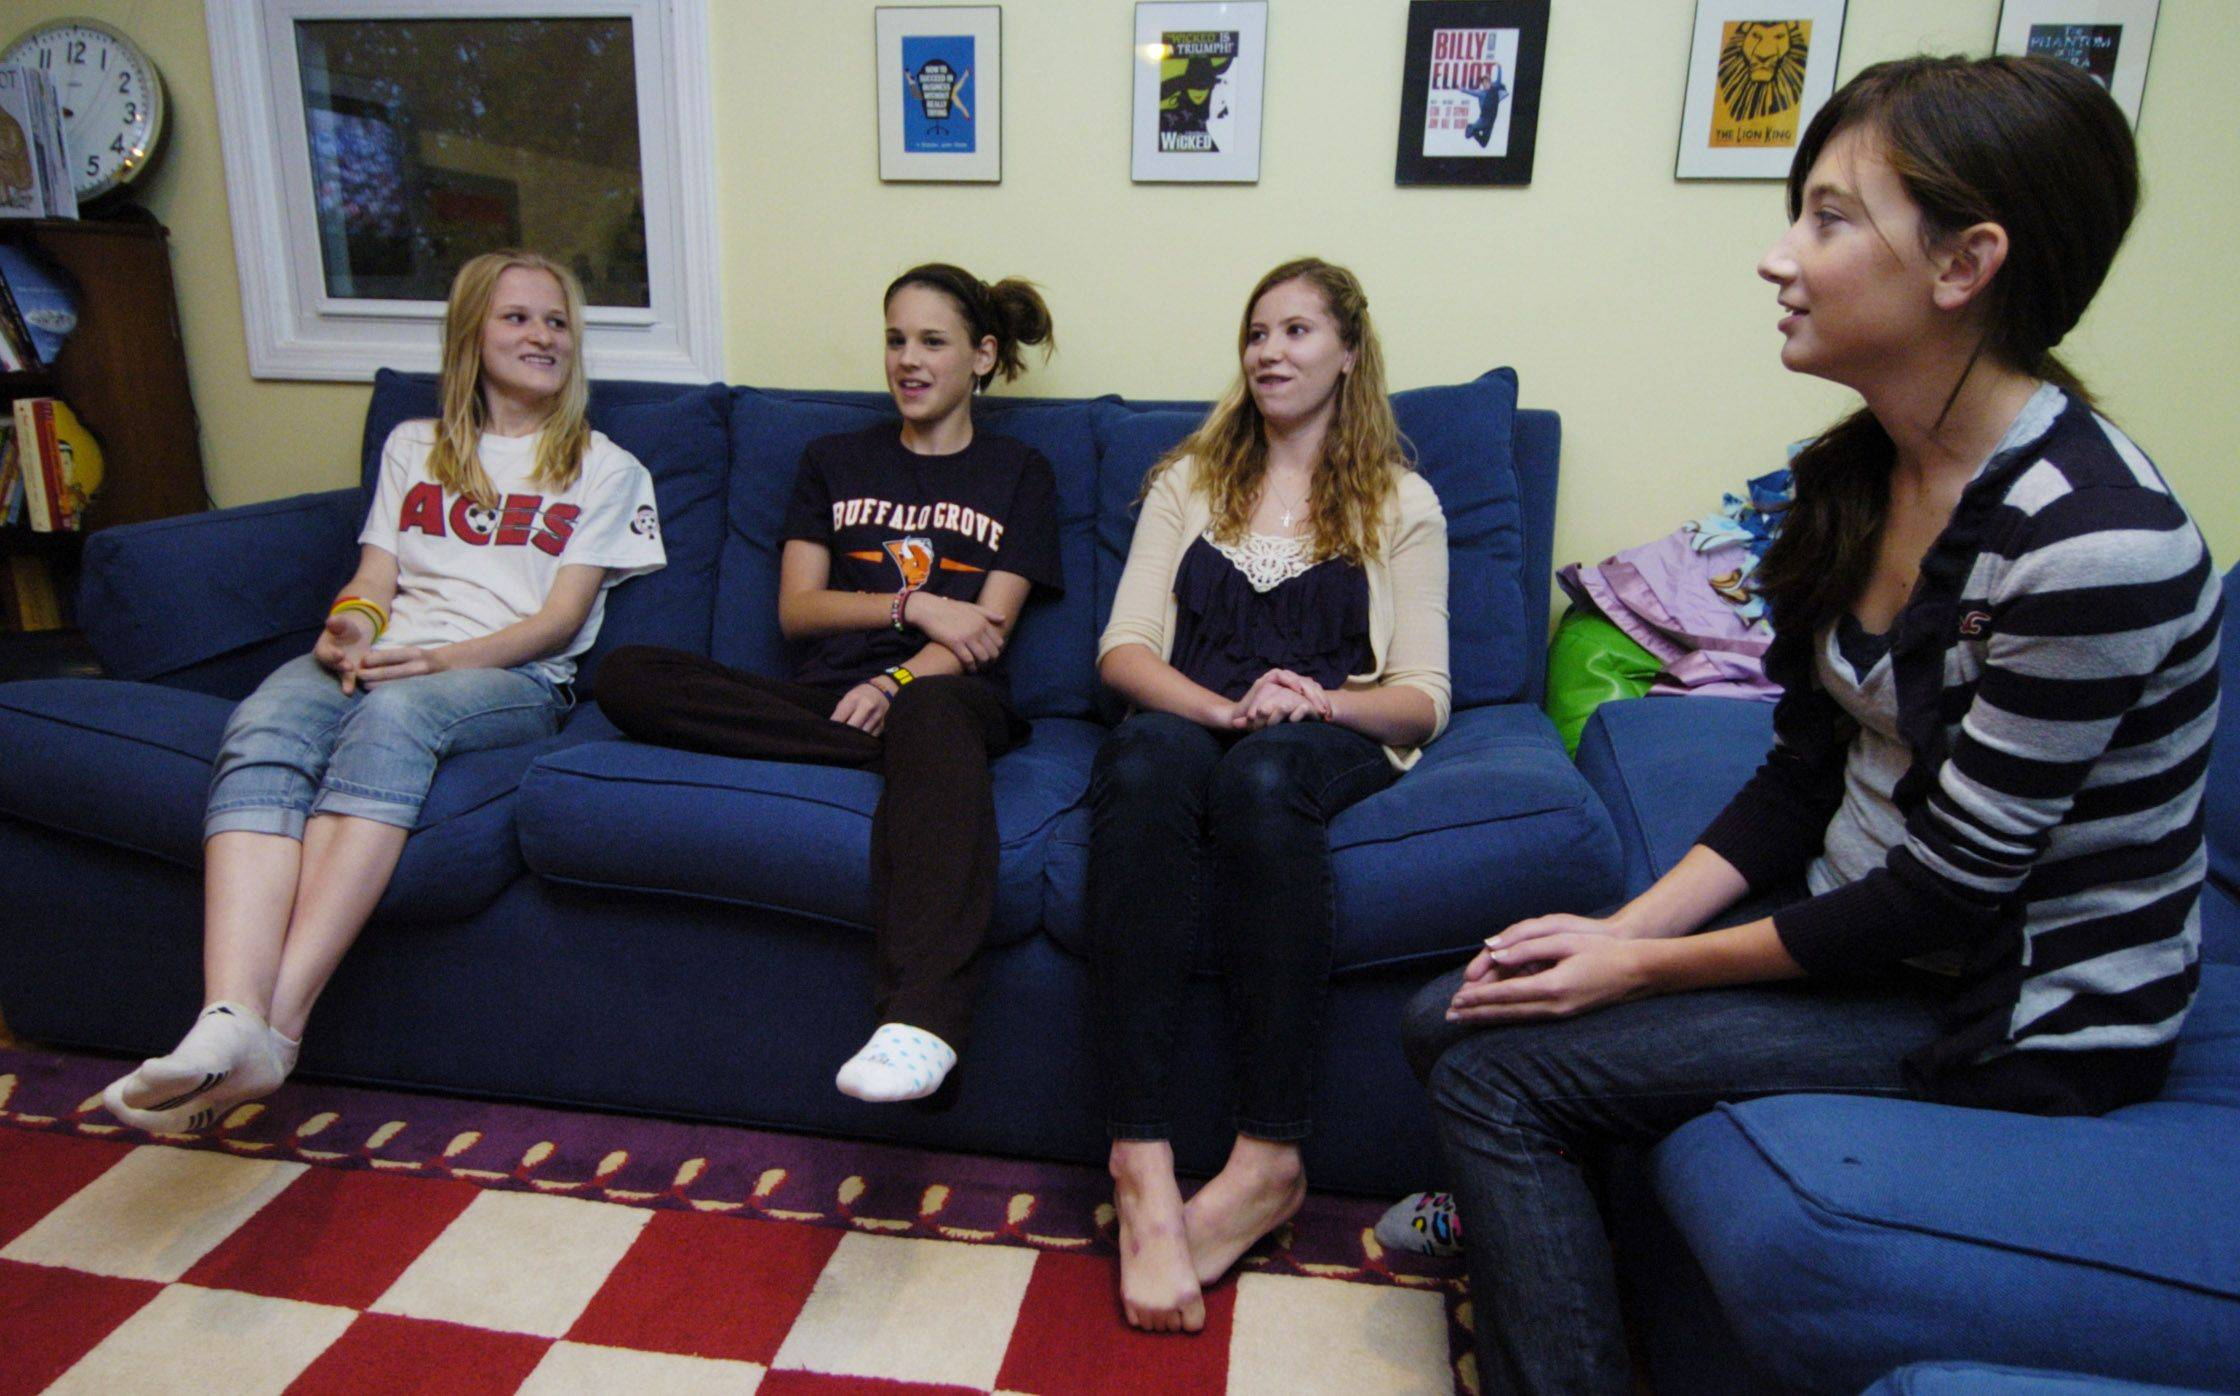 Buffalo Grove High School students Emily Davidson, from left, Kate Schneider, Sarah Naughton and Jessica Sparacino talk about the reality TV shows they watch.